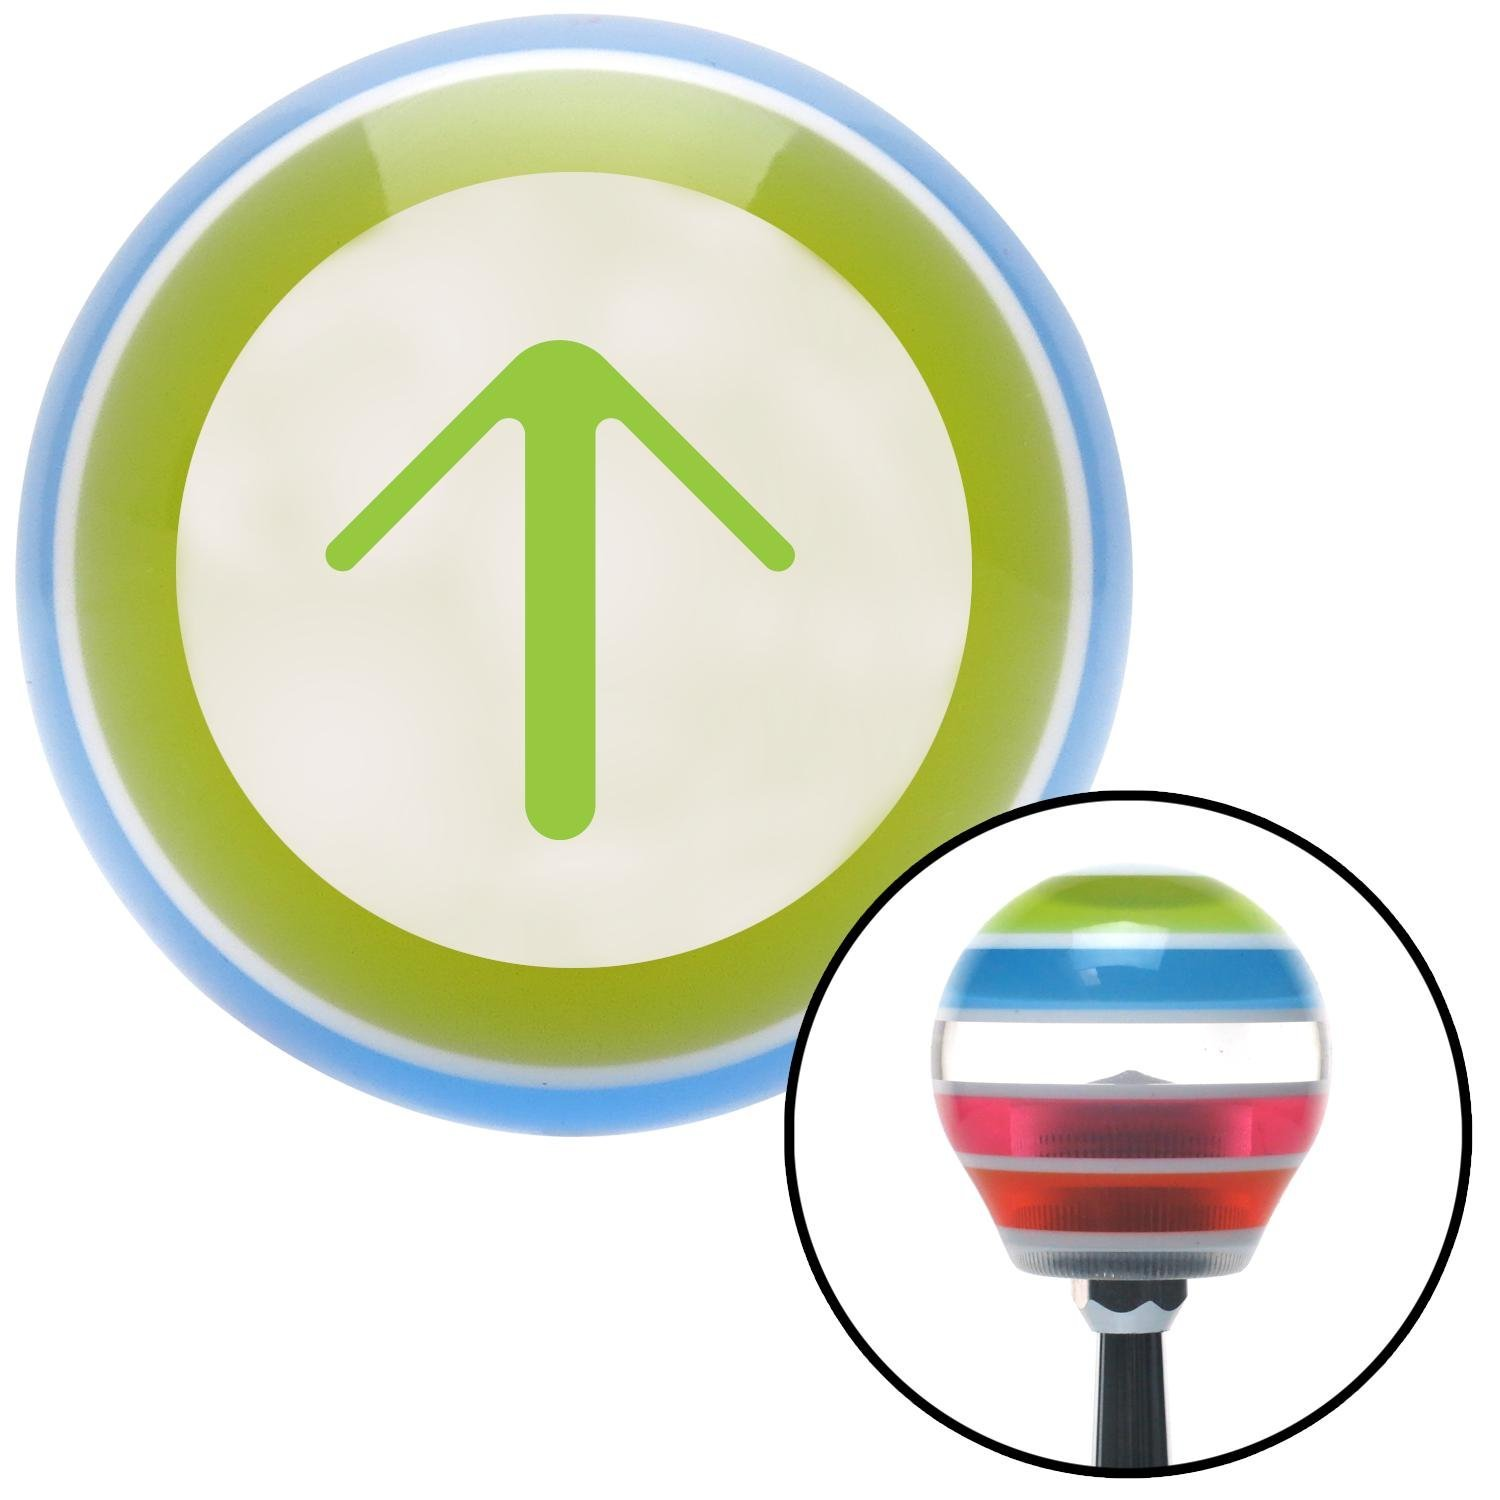 American Shifter 131037 Stripe Shift Knob with M16 x 1.5 Insert Green Solid Pointing Arrow Up